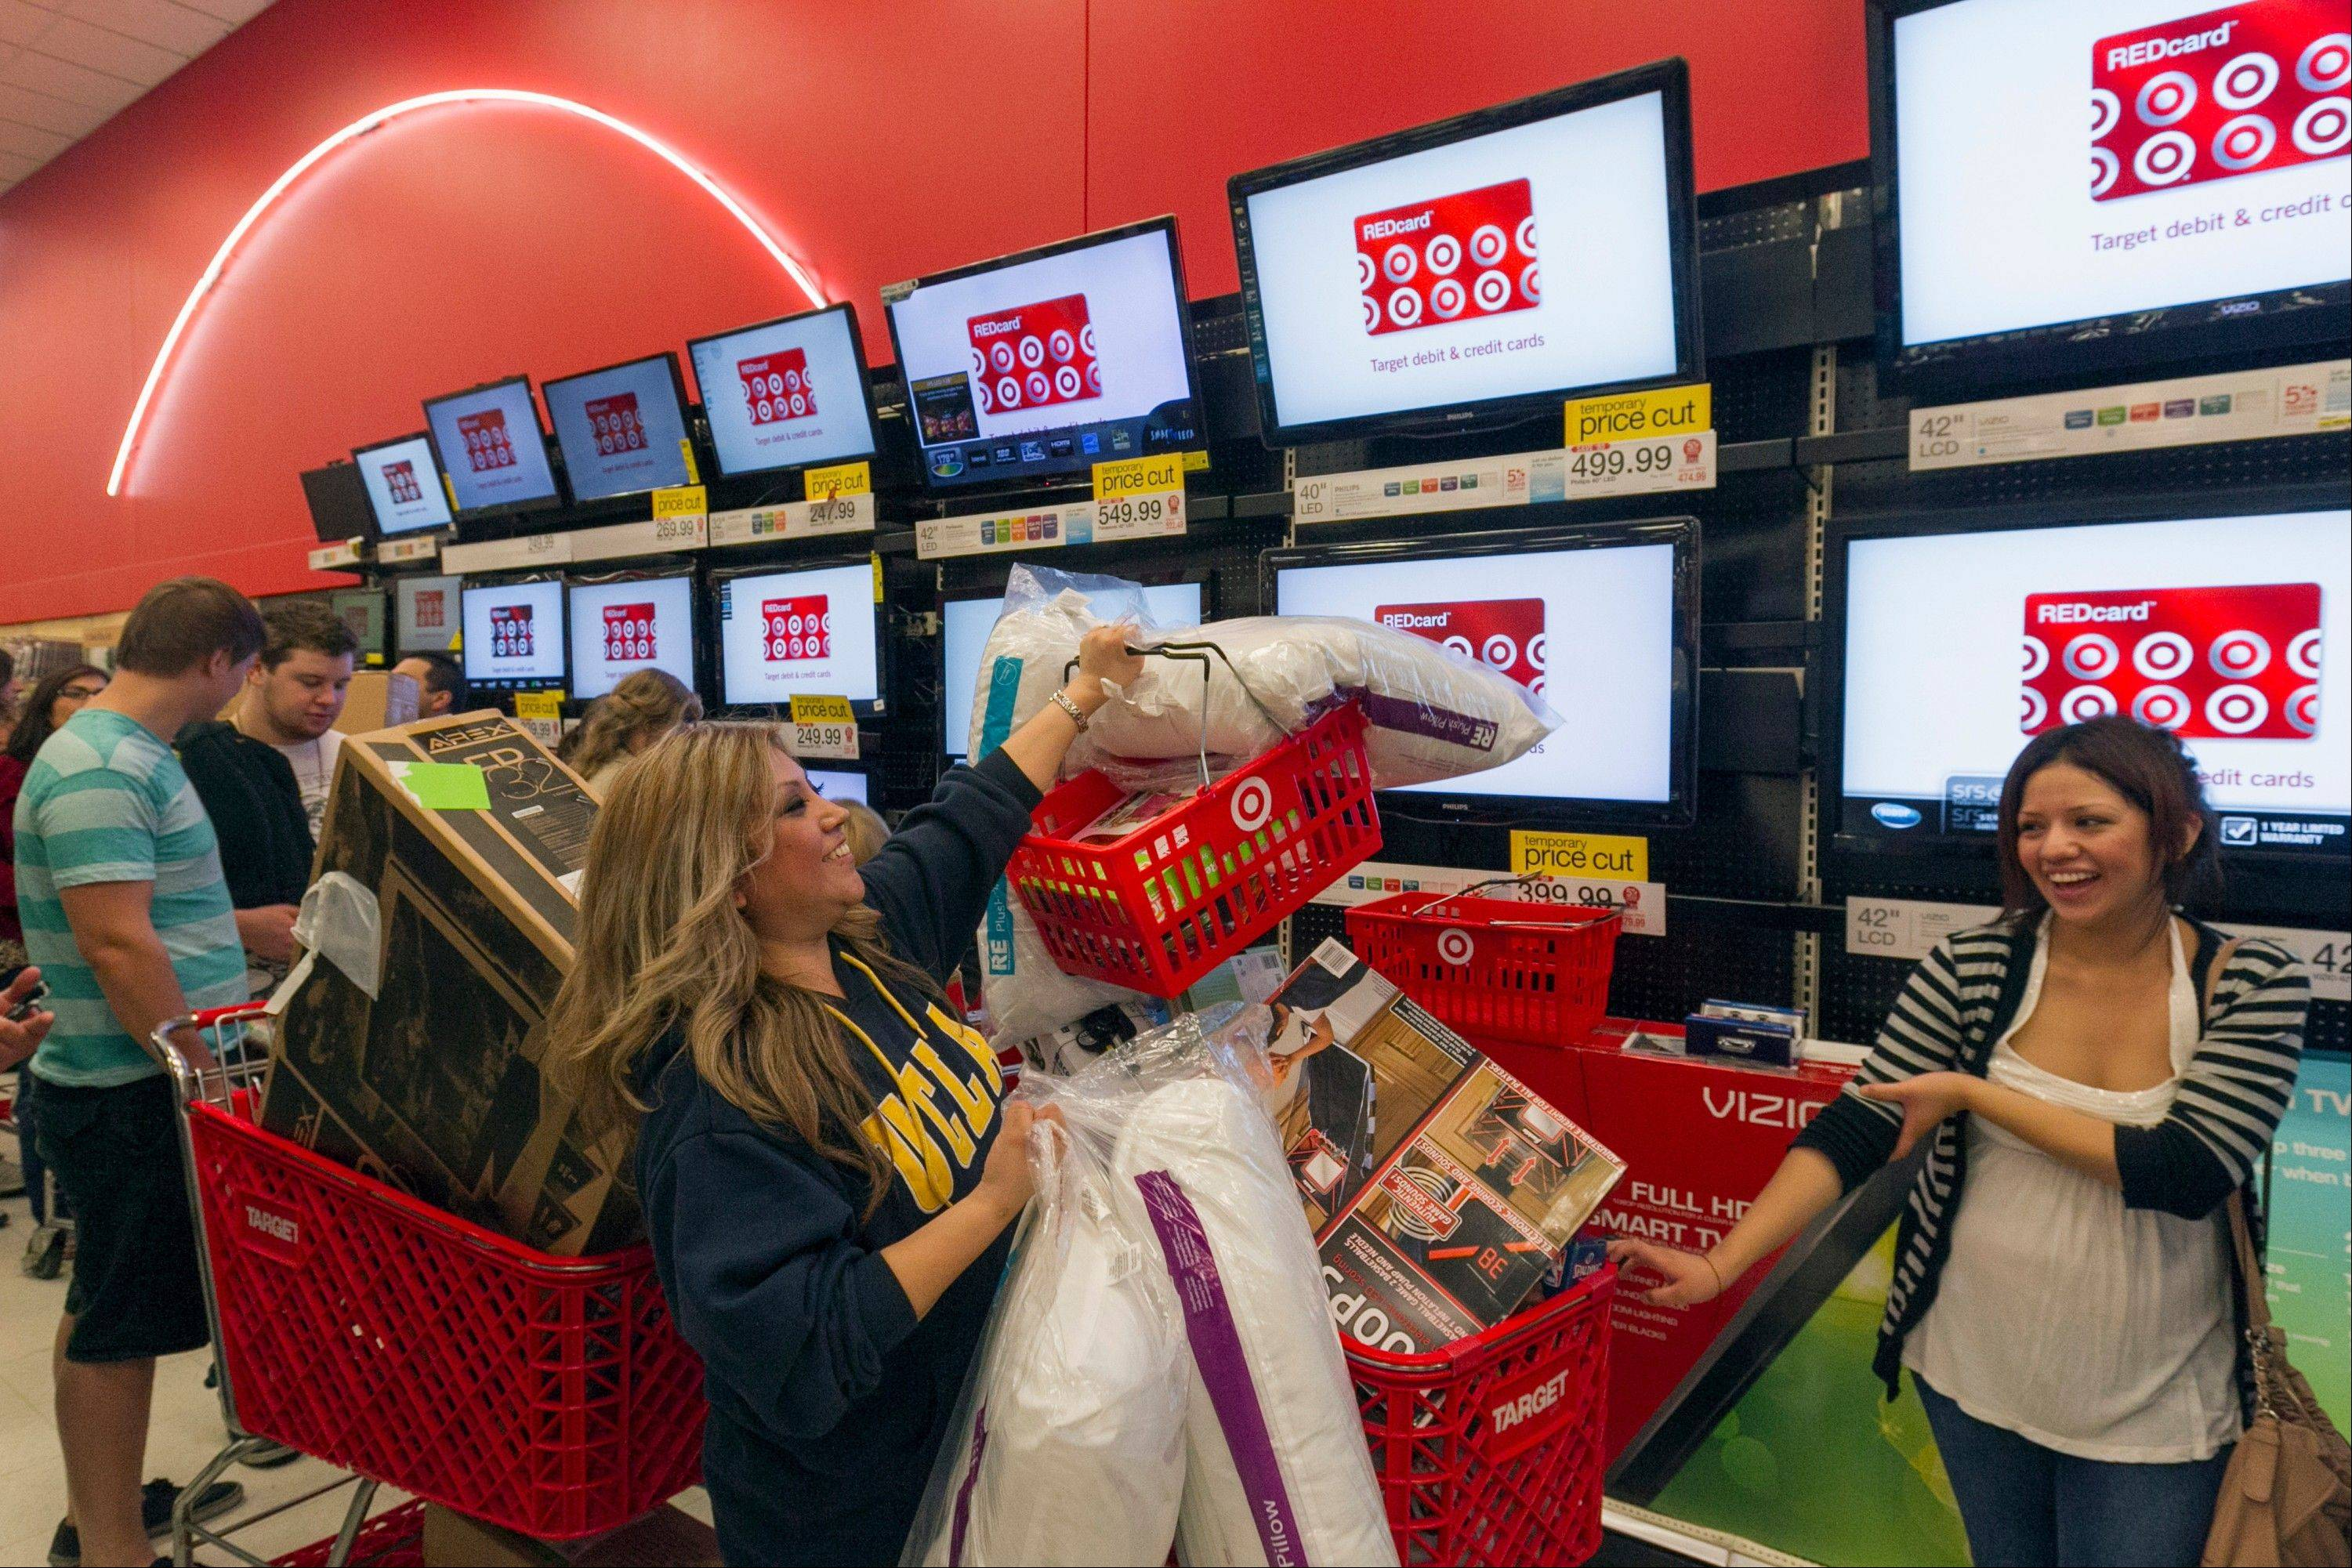 Associated Press/Nov. 22, 2012Shopper Roxanna Garcia, middle, waits in line to pay for more than $1000 in gifts at the Target store in Burbank, Calif.